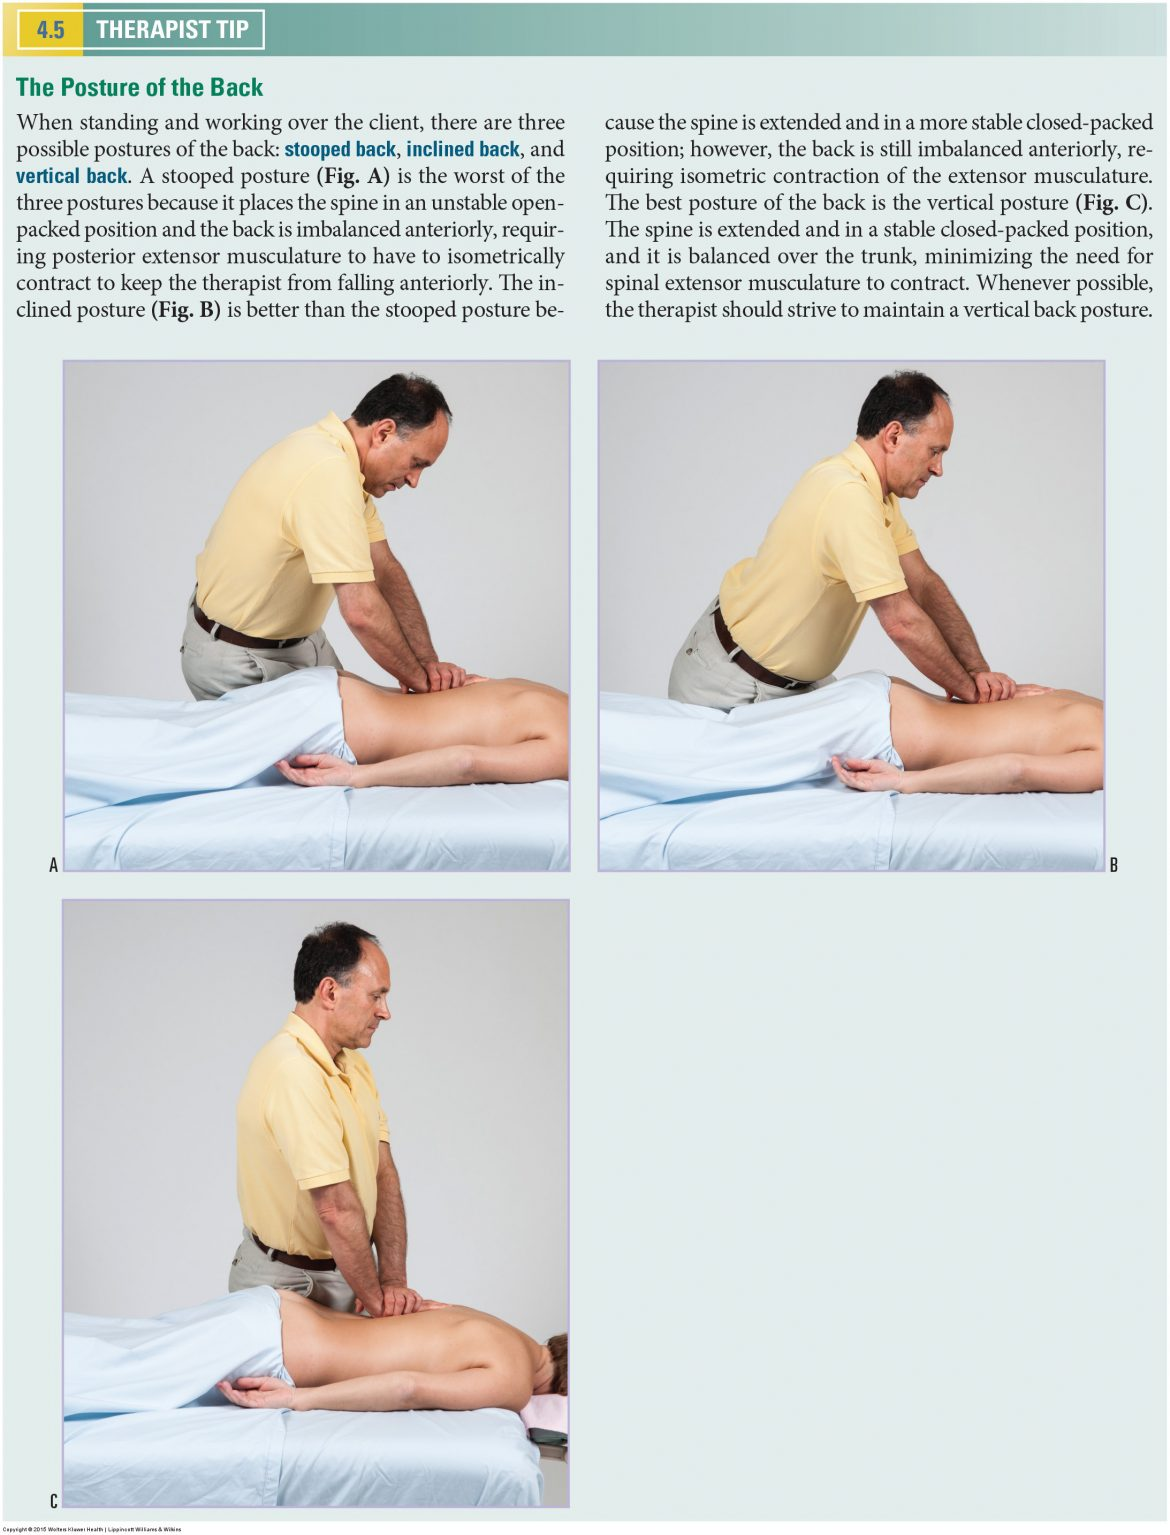 Back Postures. Permission Joseph E. Muscolino. Manual Therapy for the Low Back and Pelvis - A Clinical Orthopedic Approach (2013).